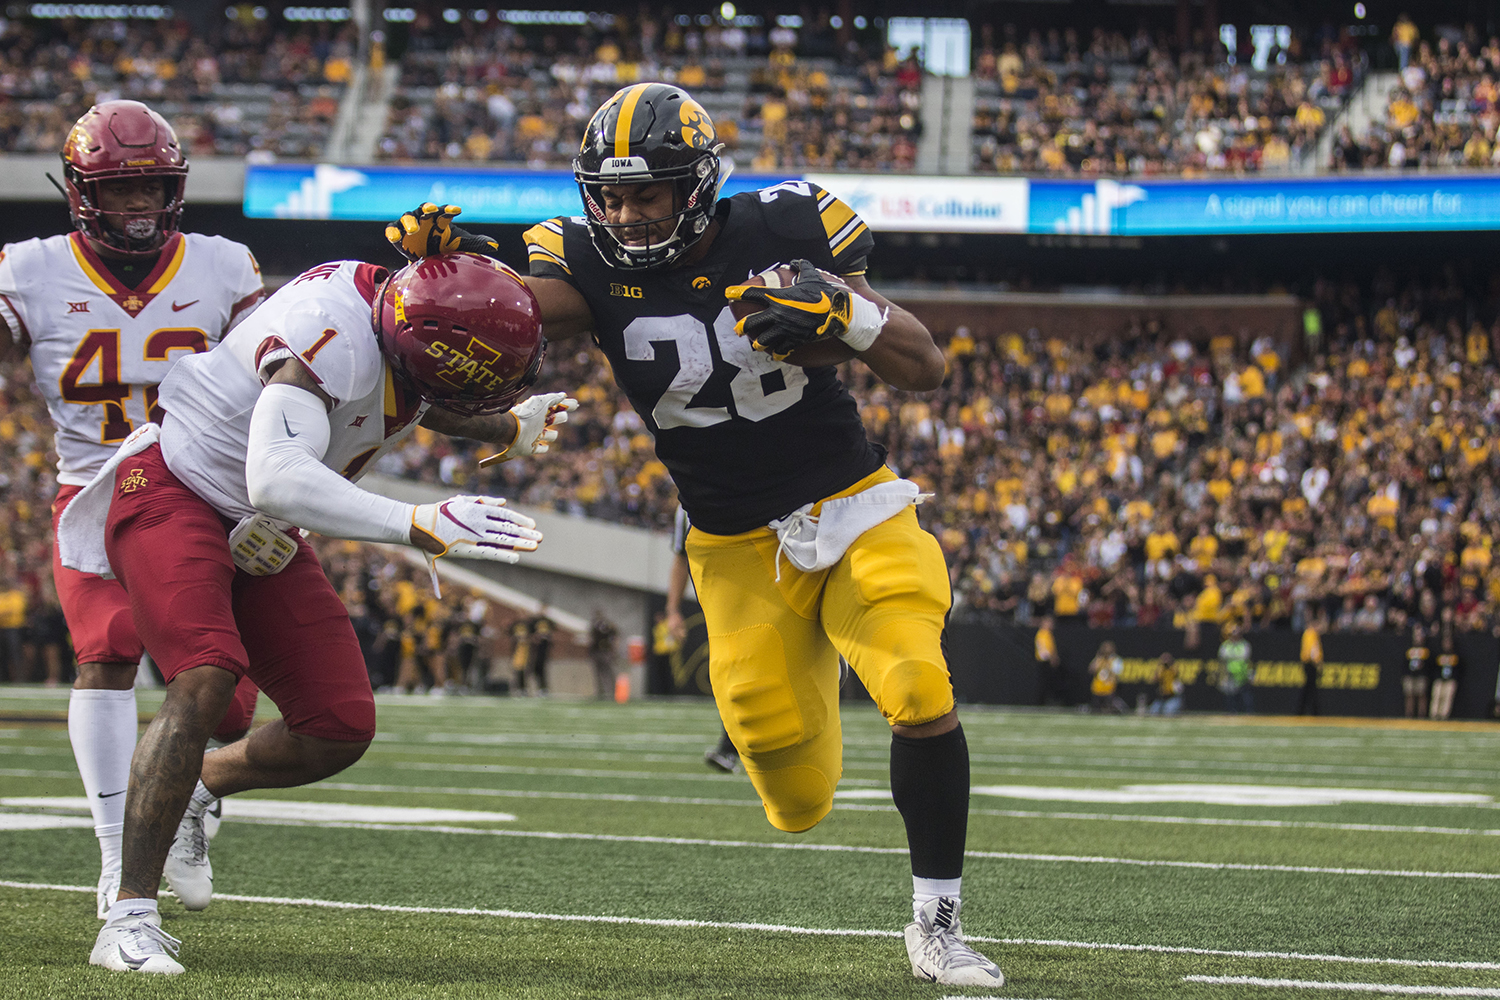 Iowa's Toren Young attempts to stop Iowa State's D'Andre Payne's tackle during the Iowa/Iowa State football game at Kinnick Stadium on Saturday, September 8, 2018. The Hawkeyes defeated the Cyclones, 13-3.